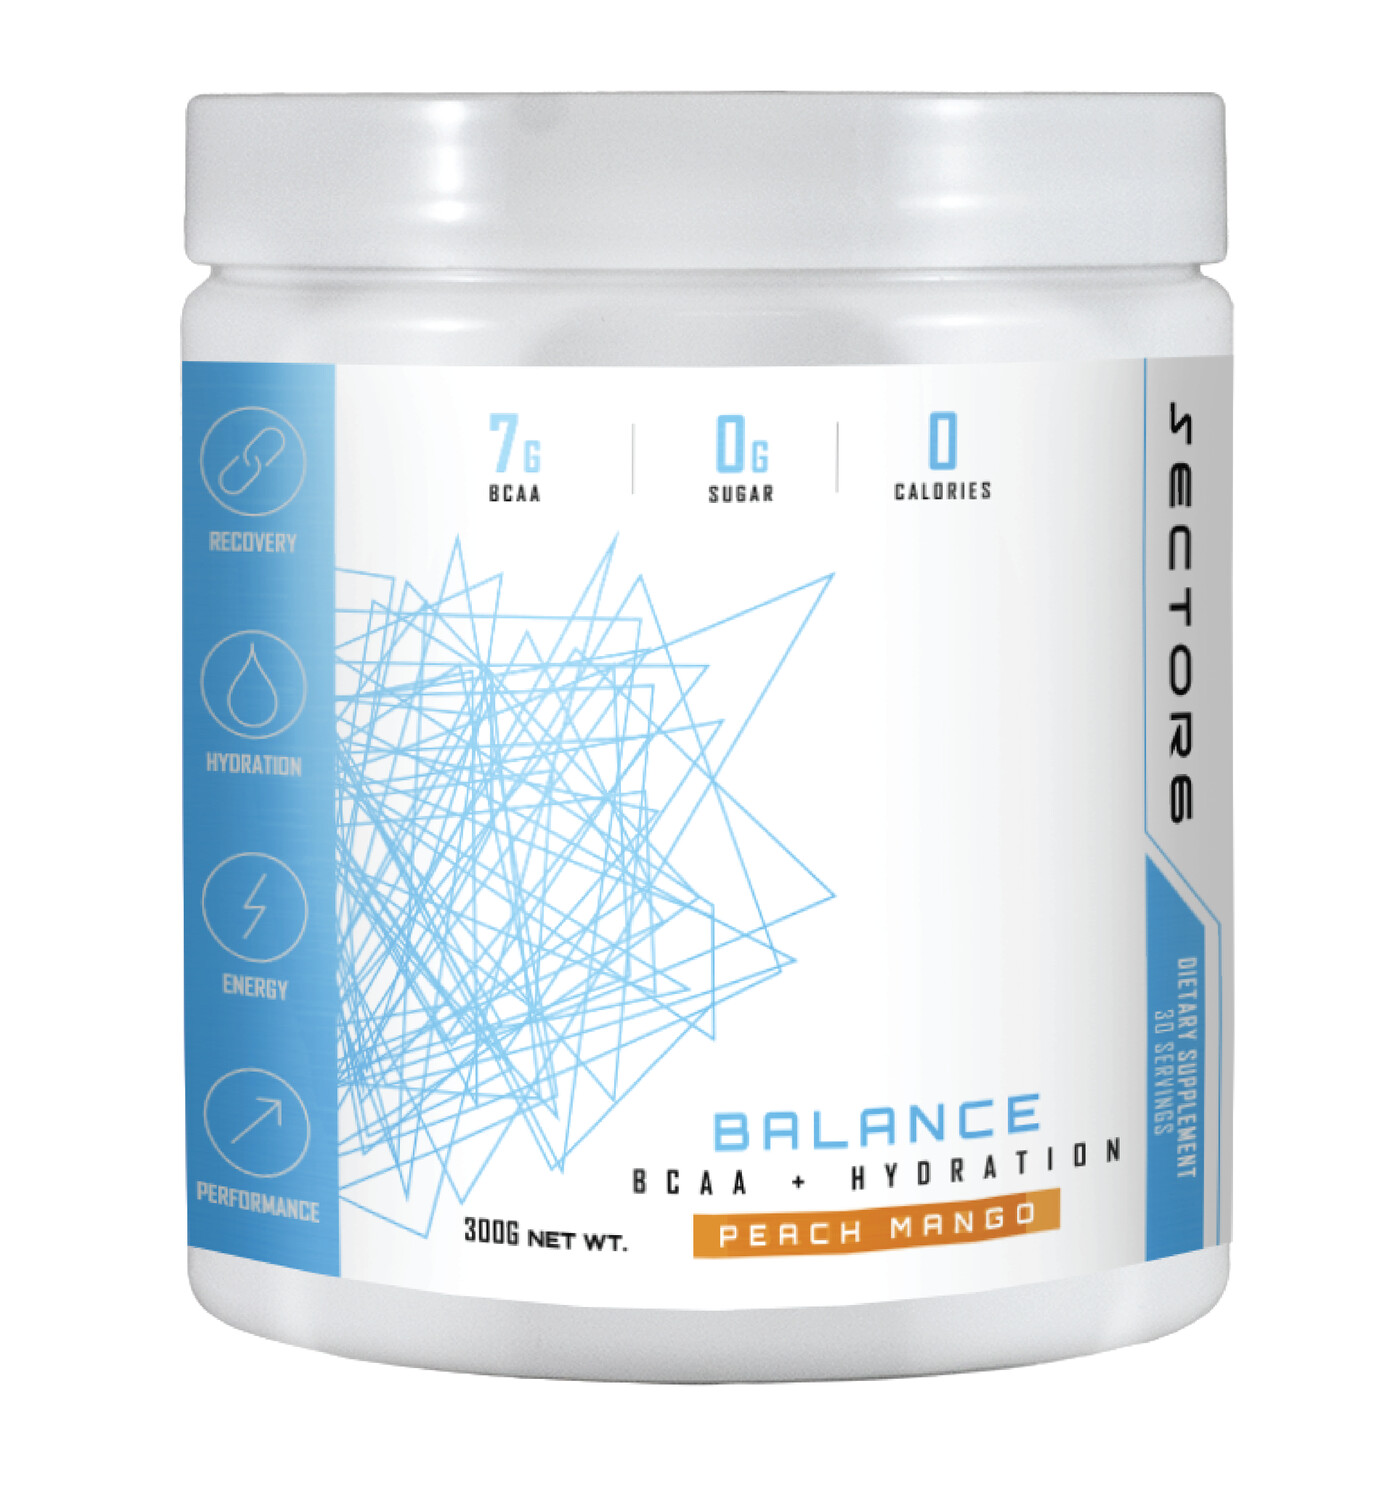 Balance BCAA + Hydration 30 Servings